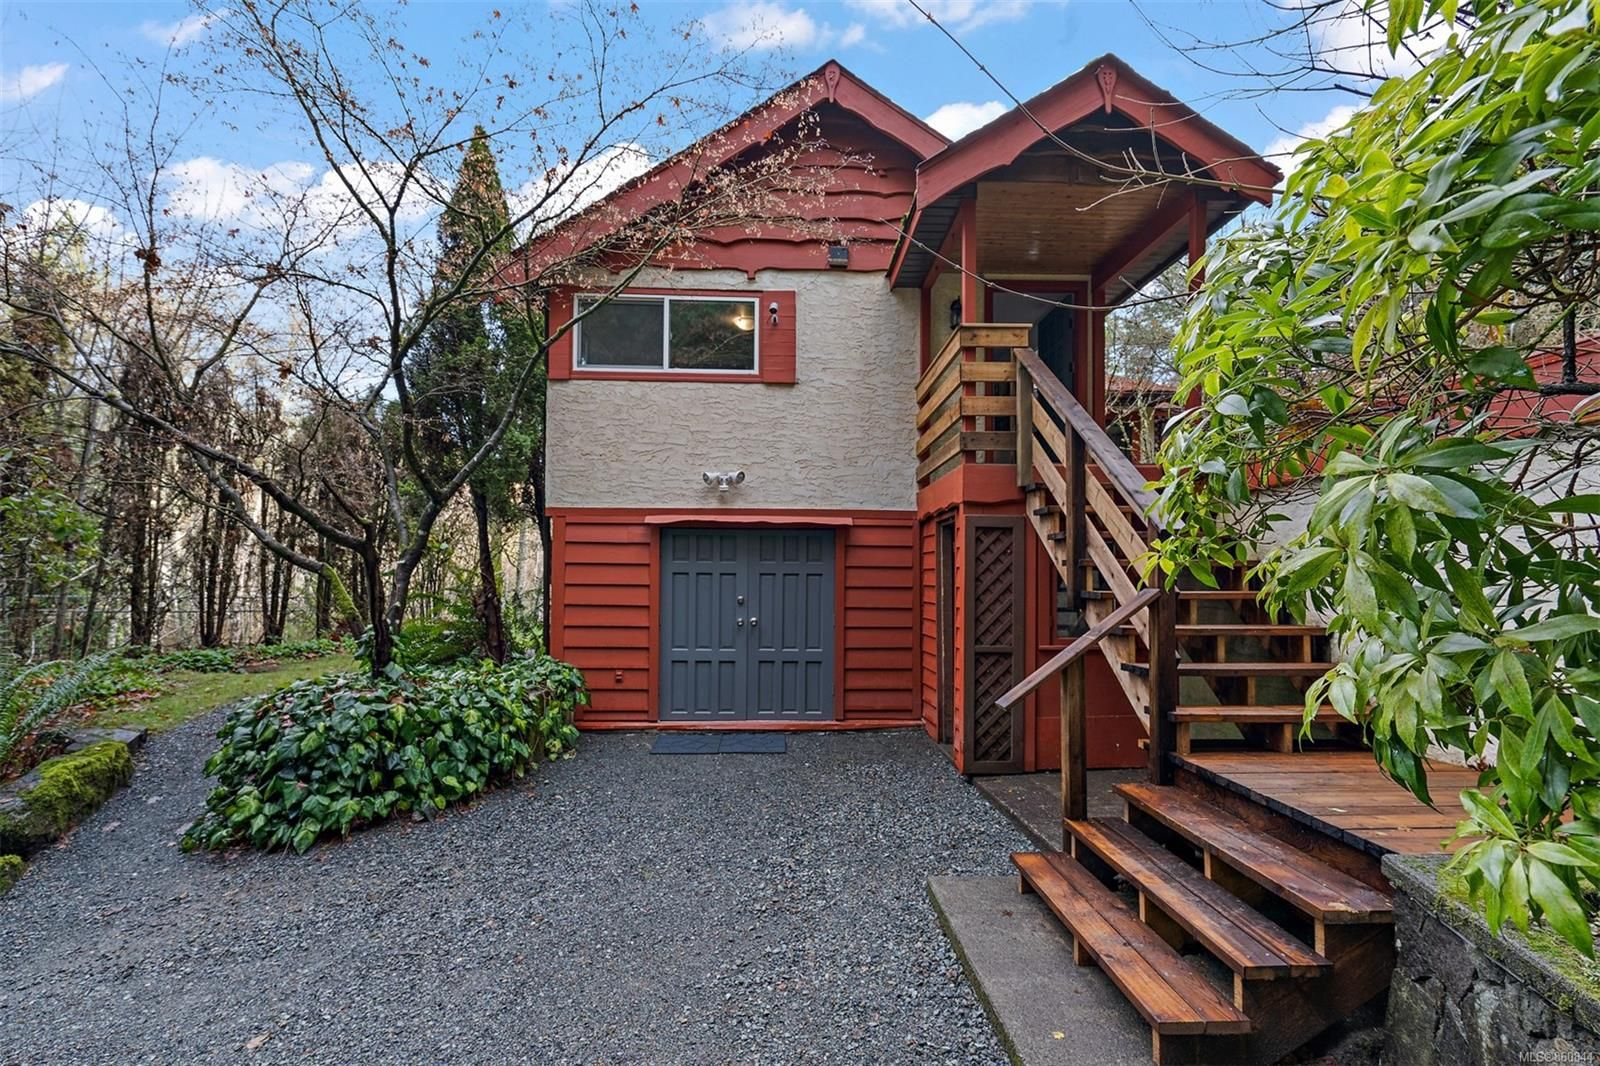 Main Photo: 729 Latoria Rd in : La Olympic View House for sale (Langford)  : MLS®# 860844